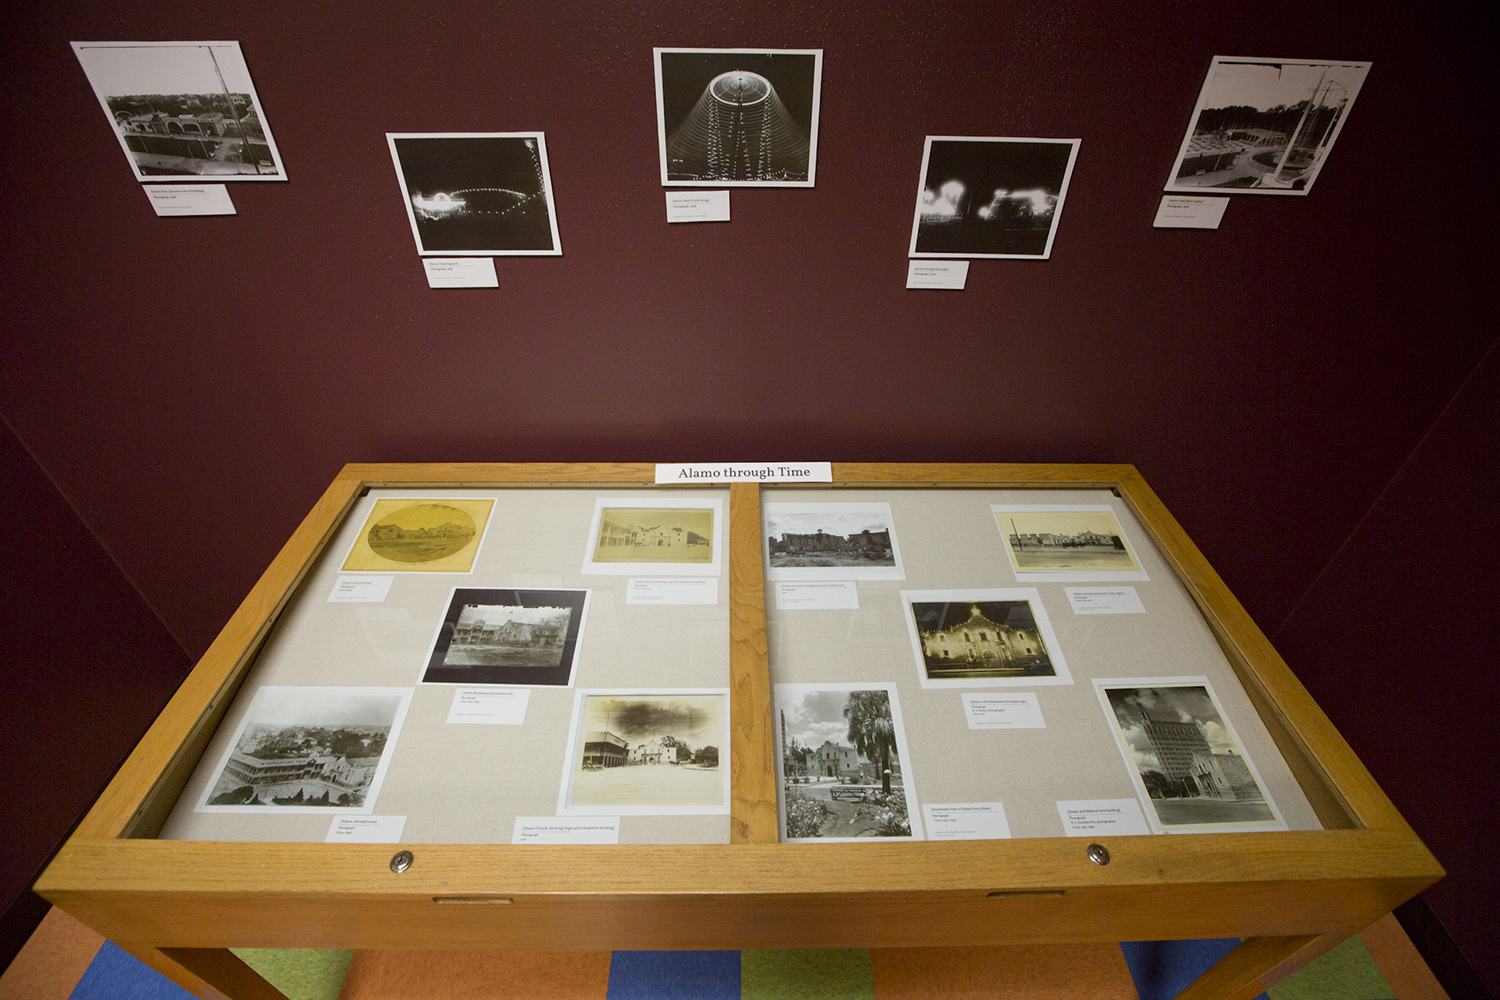 An exhibit in the Daughters of the Republic of Texas Library shows the Alamo through time.